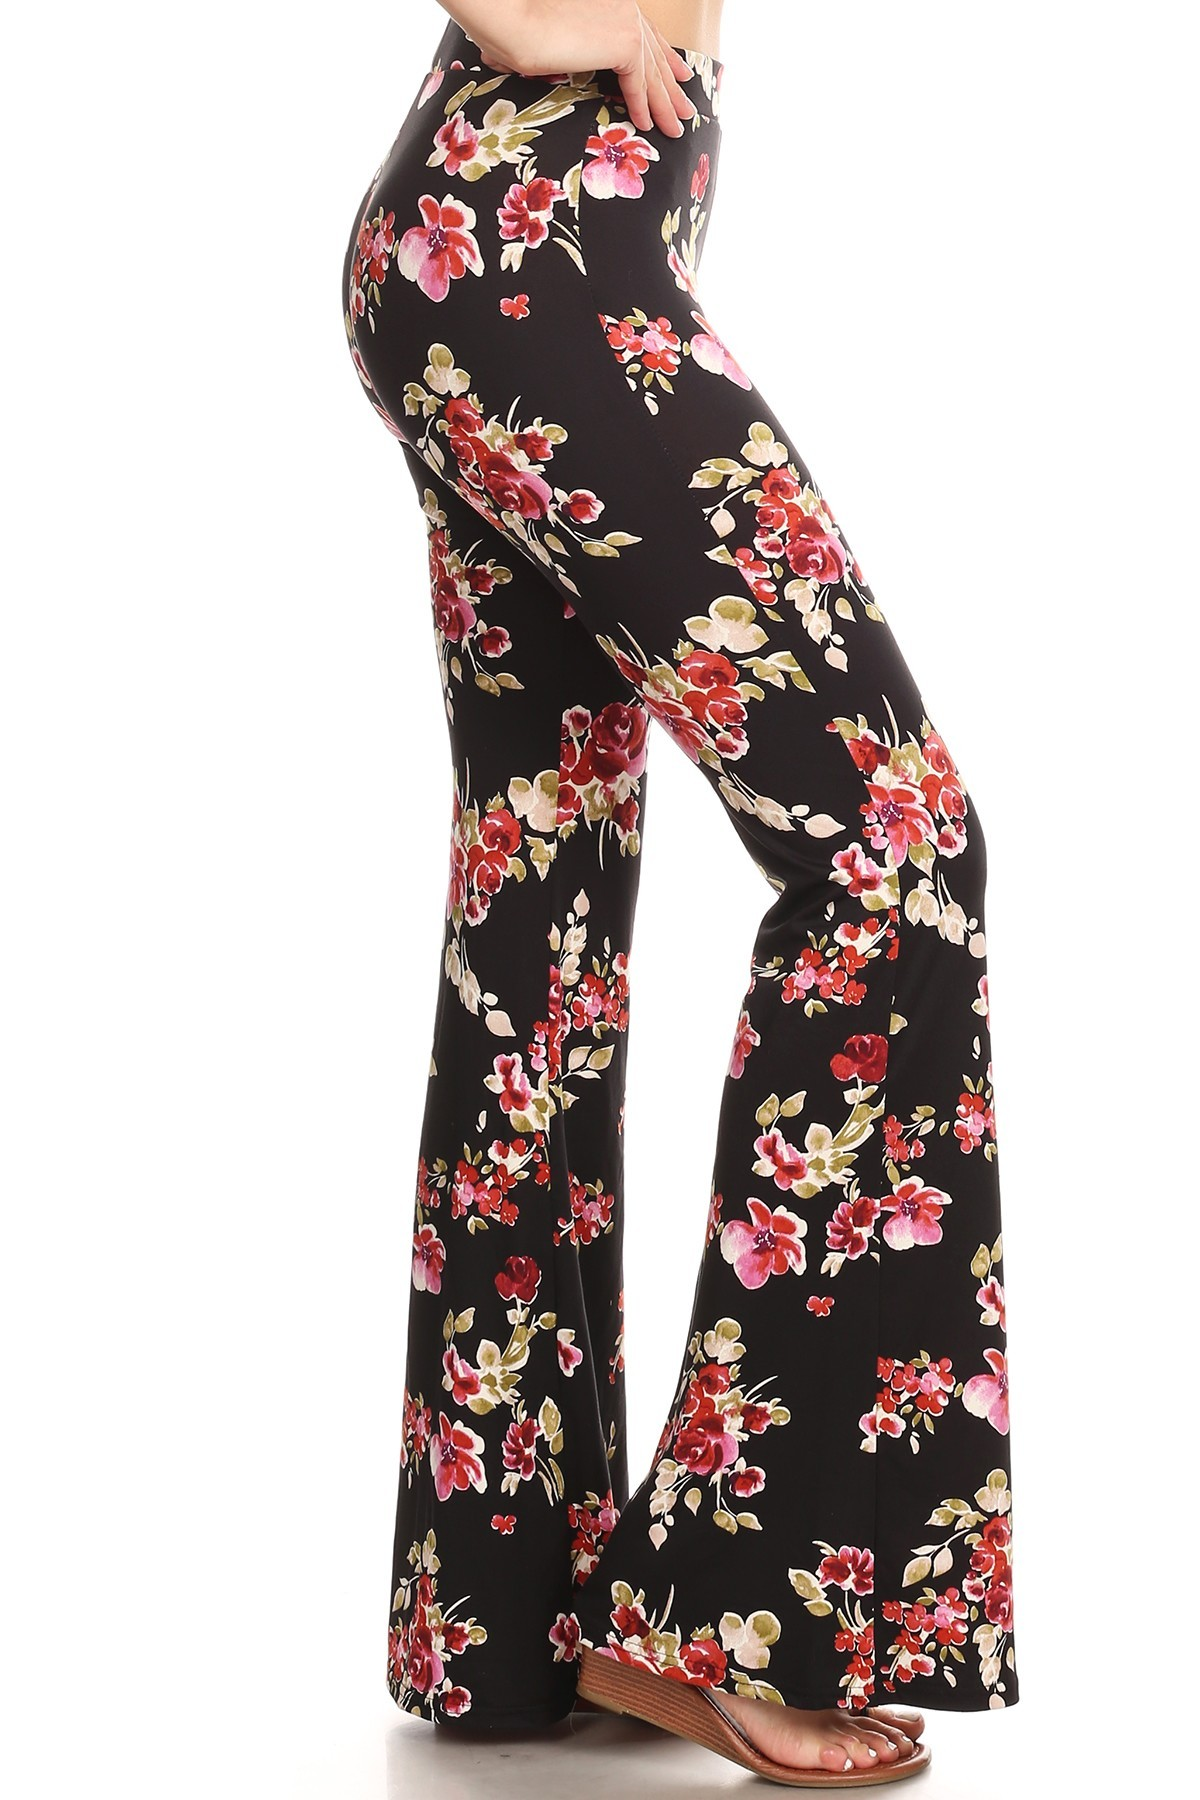 BLACK/PINK/GREEN FLORAL PRINT BRUSH POLY FLARE PANTS#8FP01-36